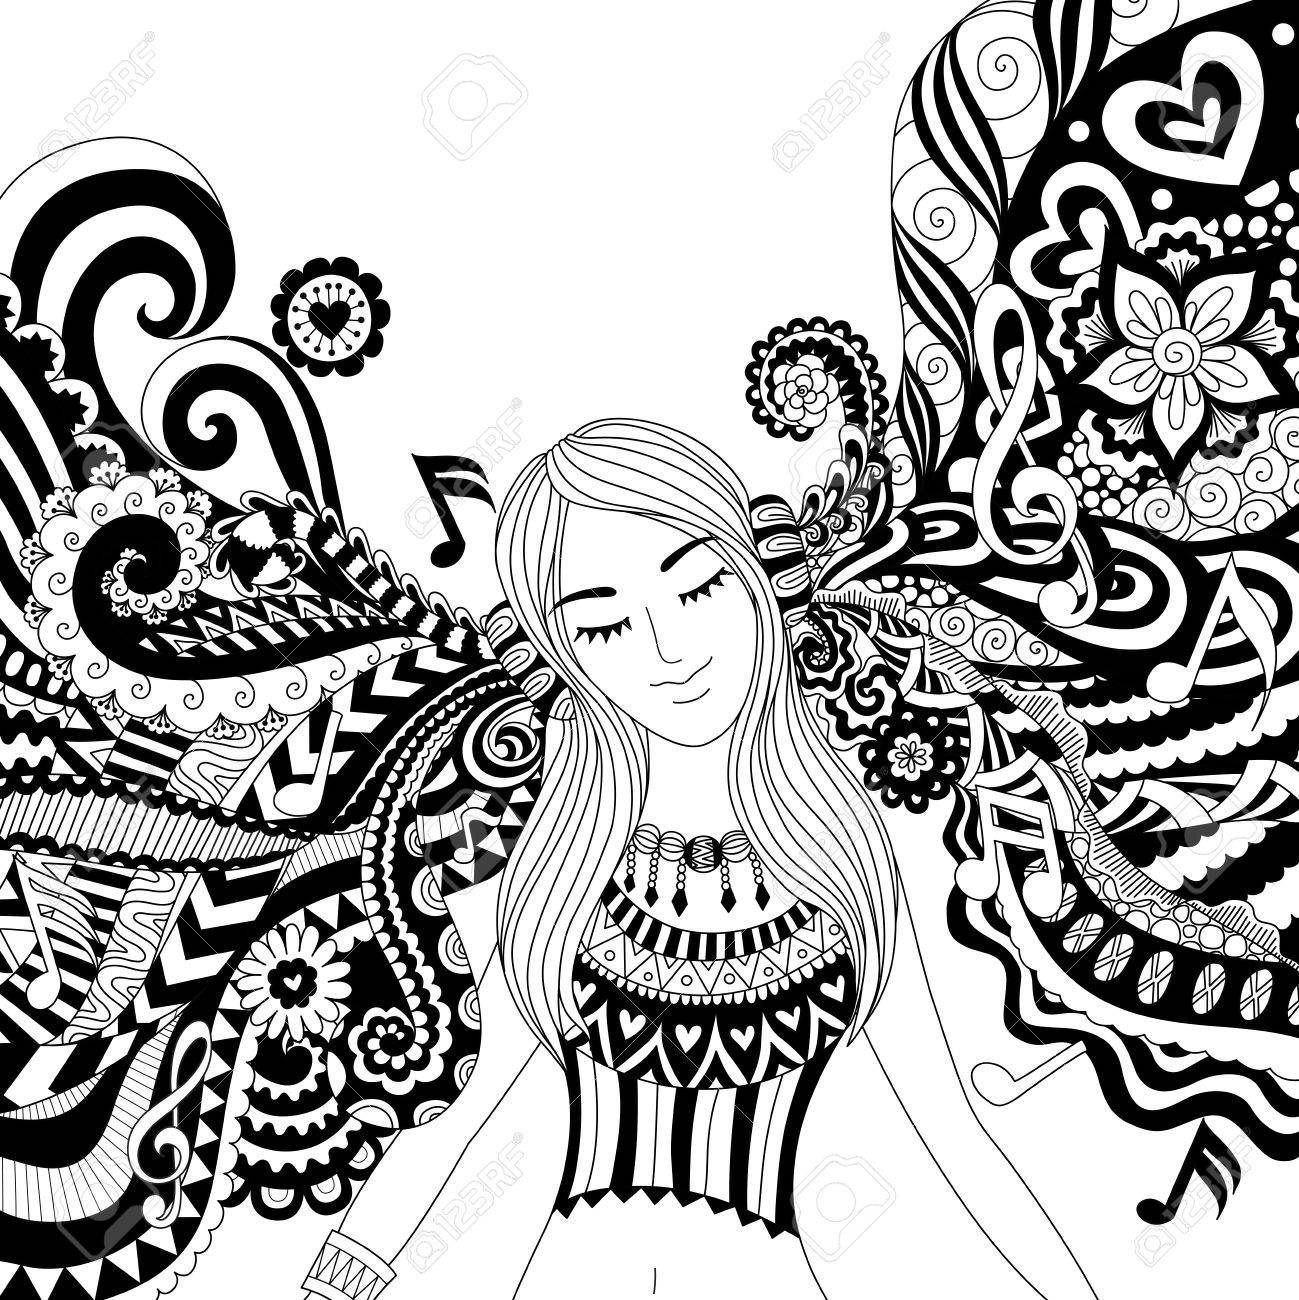 Girl listening to music happily zendoodle design for banner , card, T shirt , adult coloring book pages - 68153960